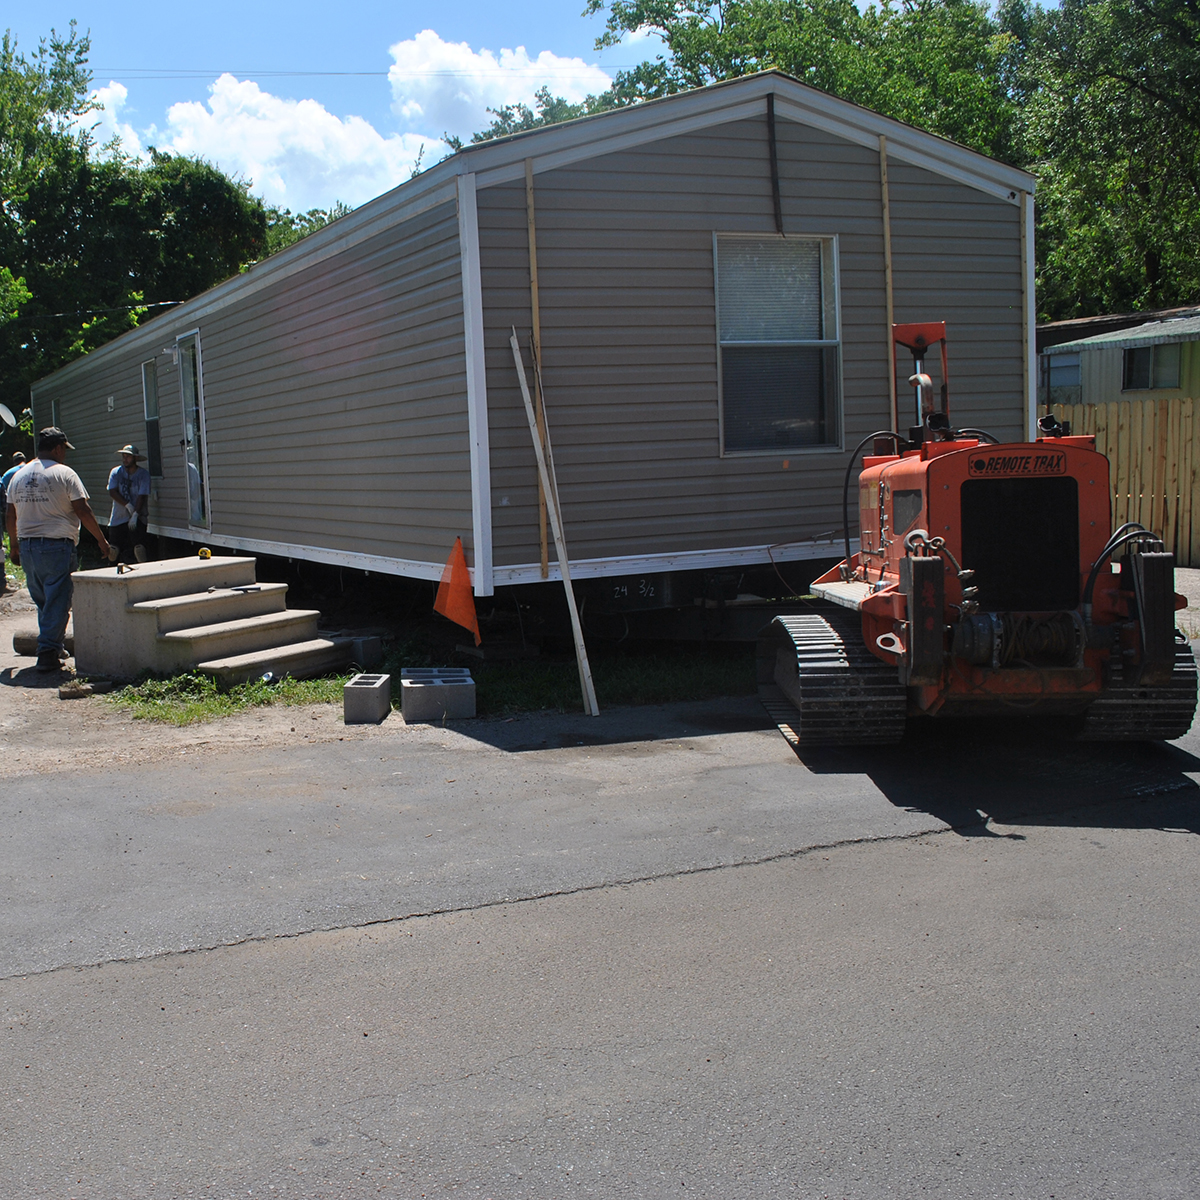 Disaster Relief Provides New Trailer for Family